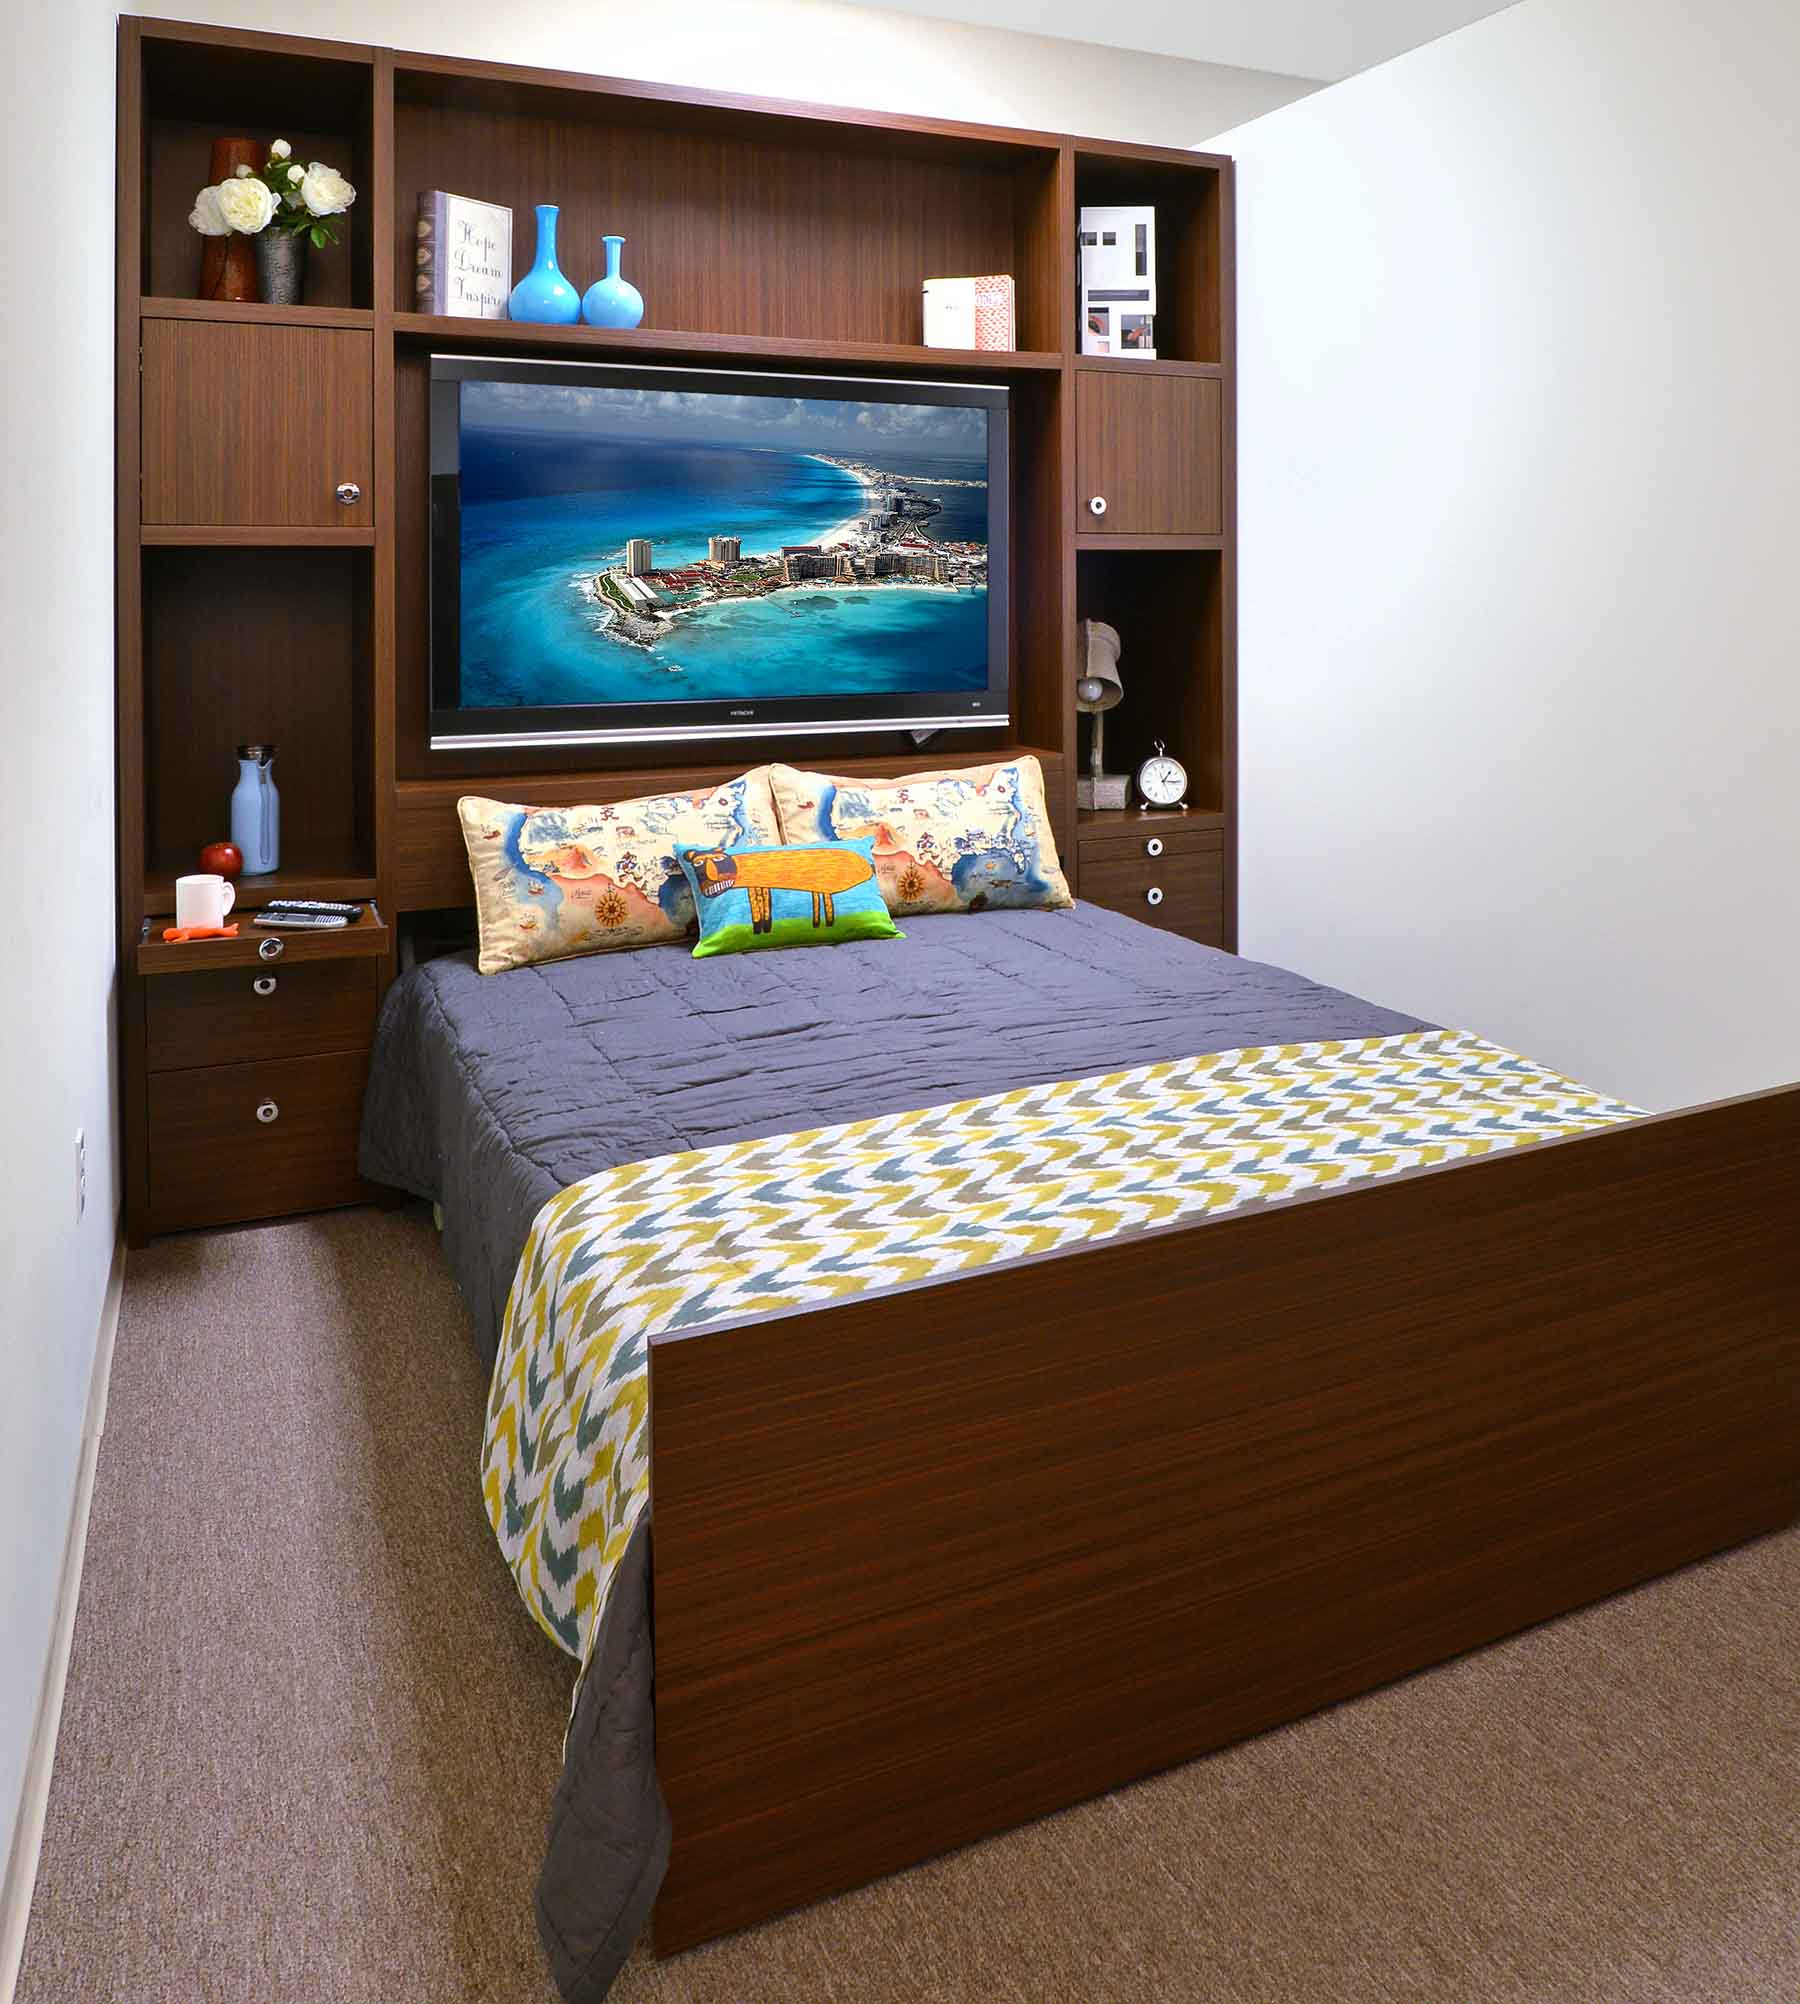 Organization Inspiration: 8 Superb Space-Saving Beds